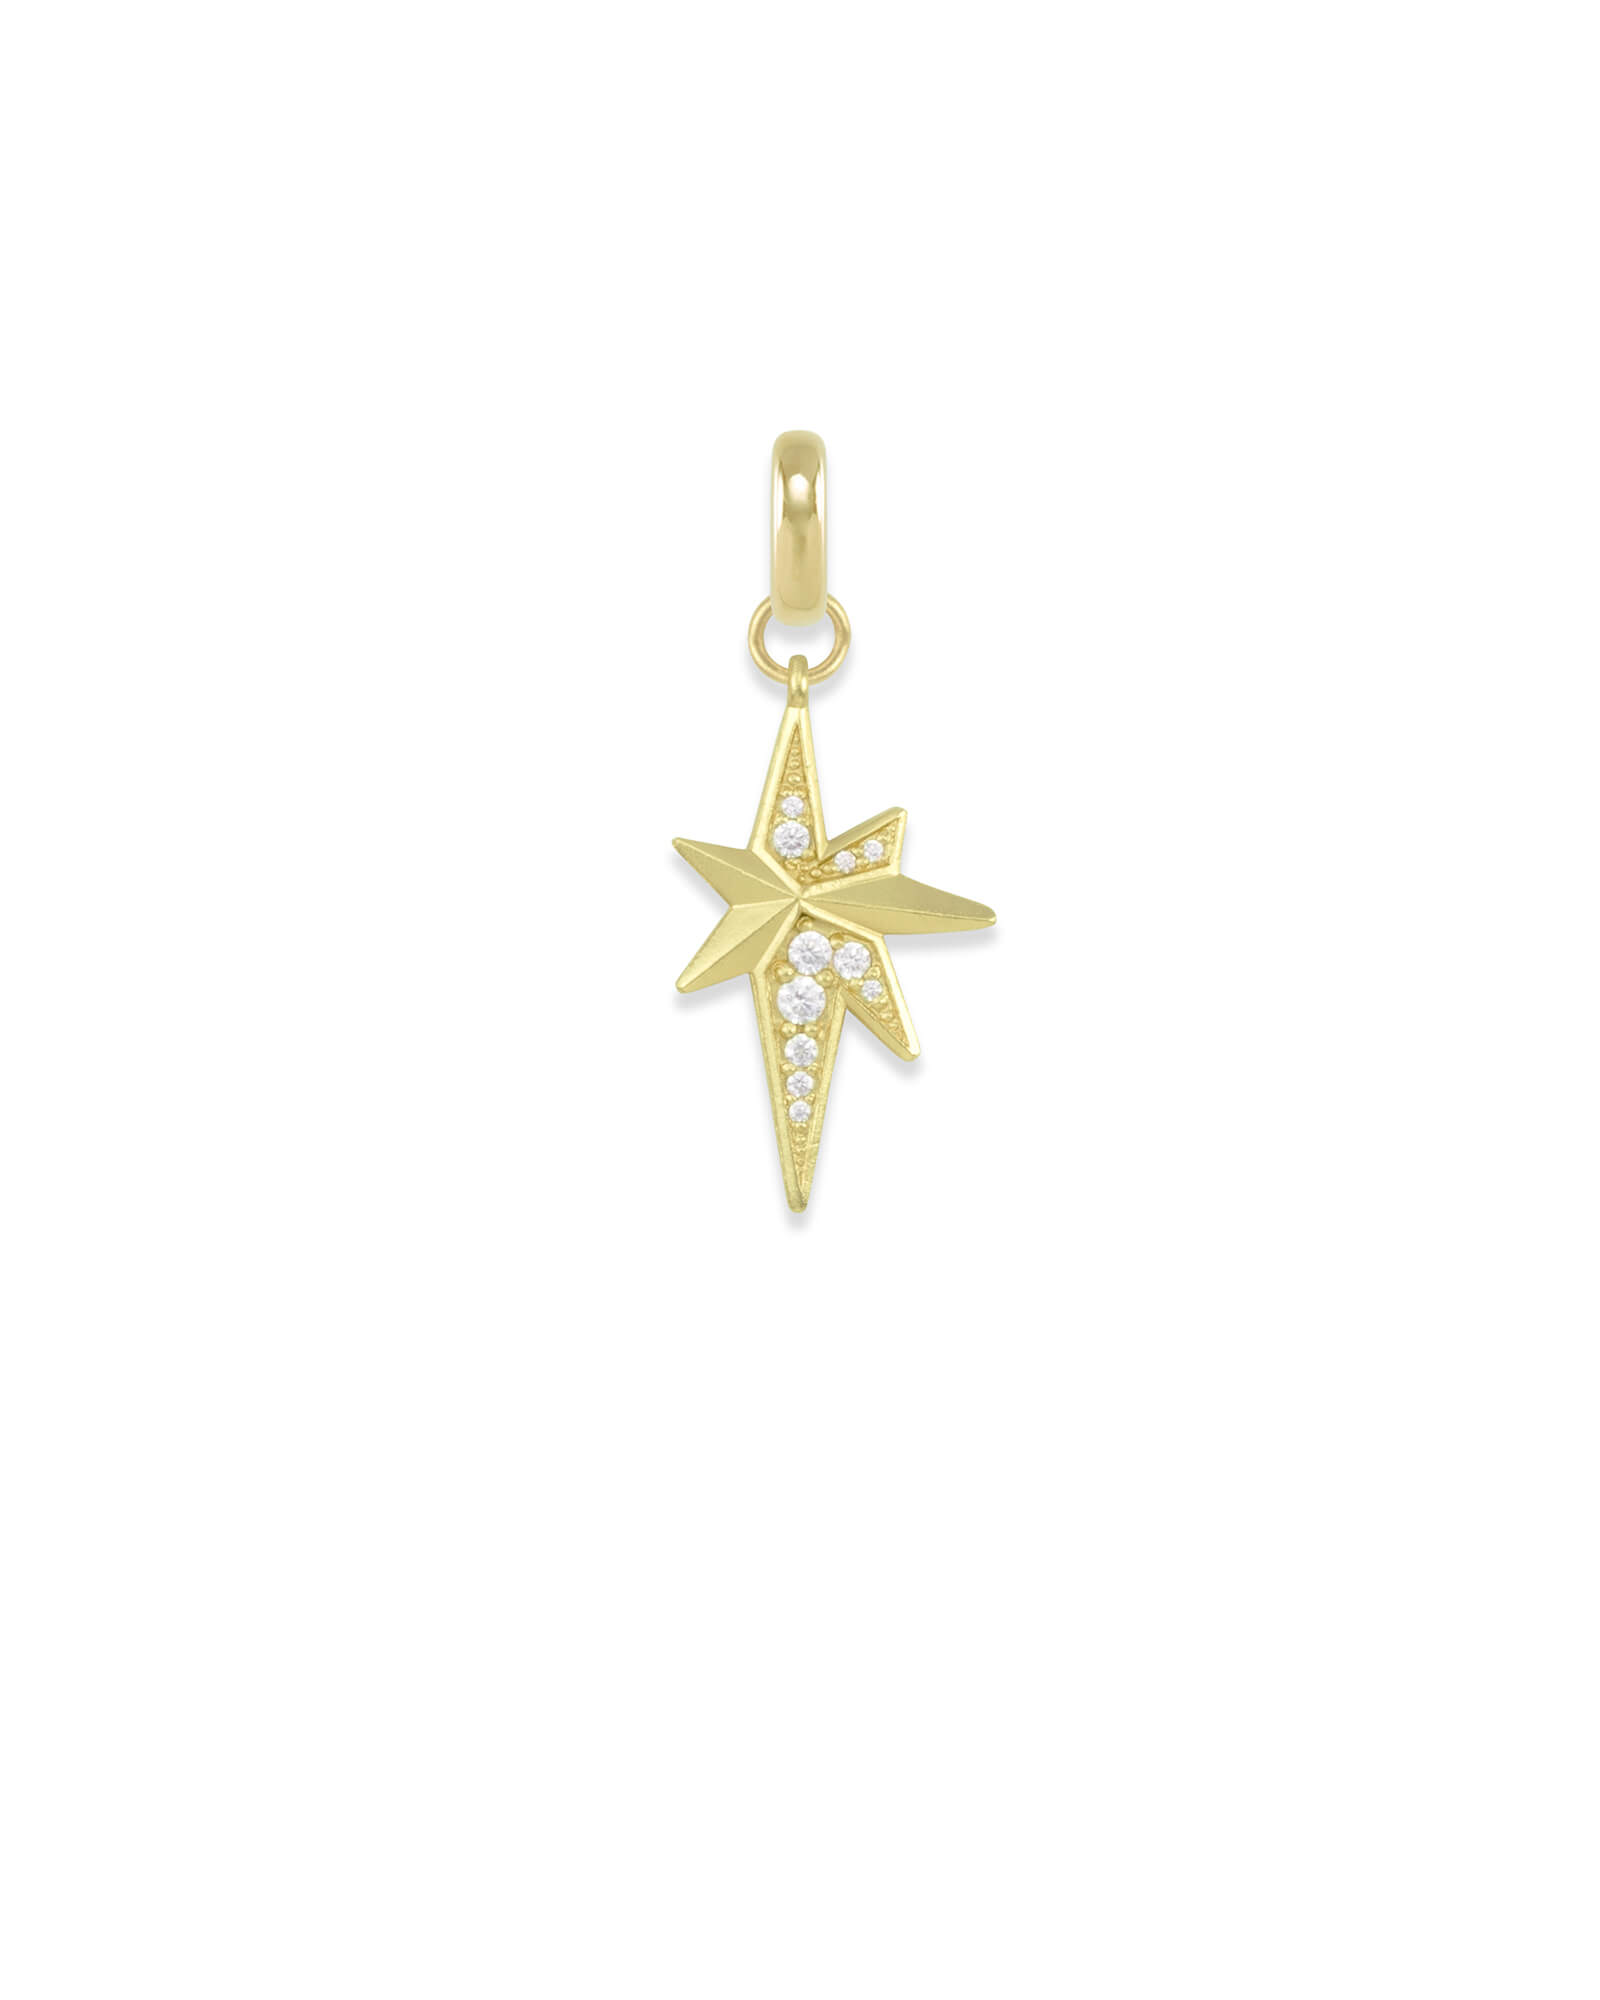 North Star Charm in Gold